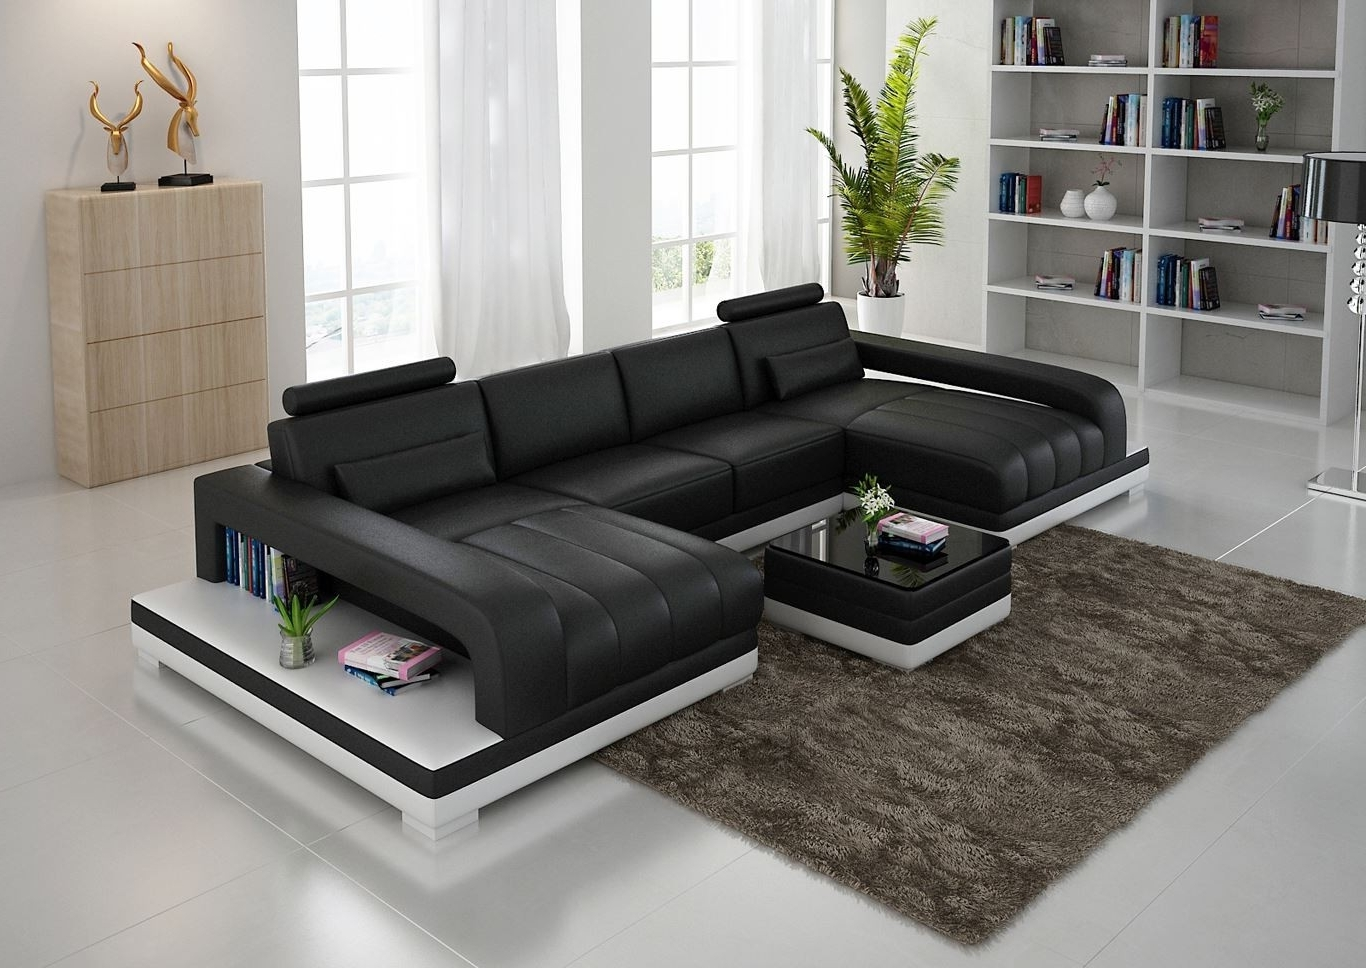 Best And Newest Double Chaise Sectional Sofas: Type And Finishing (View 2 of 15)